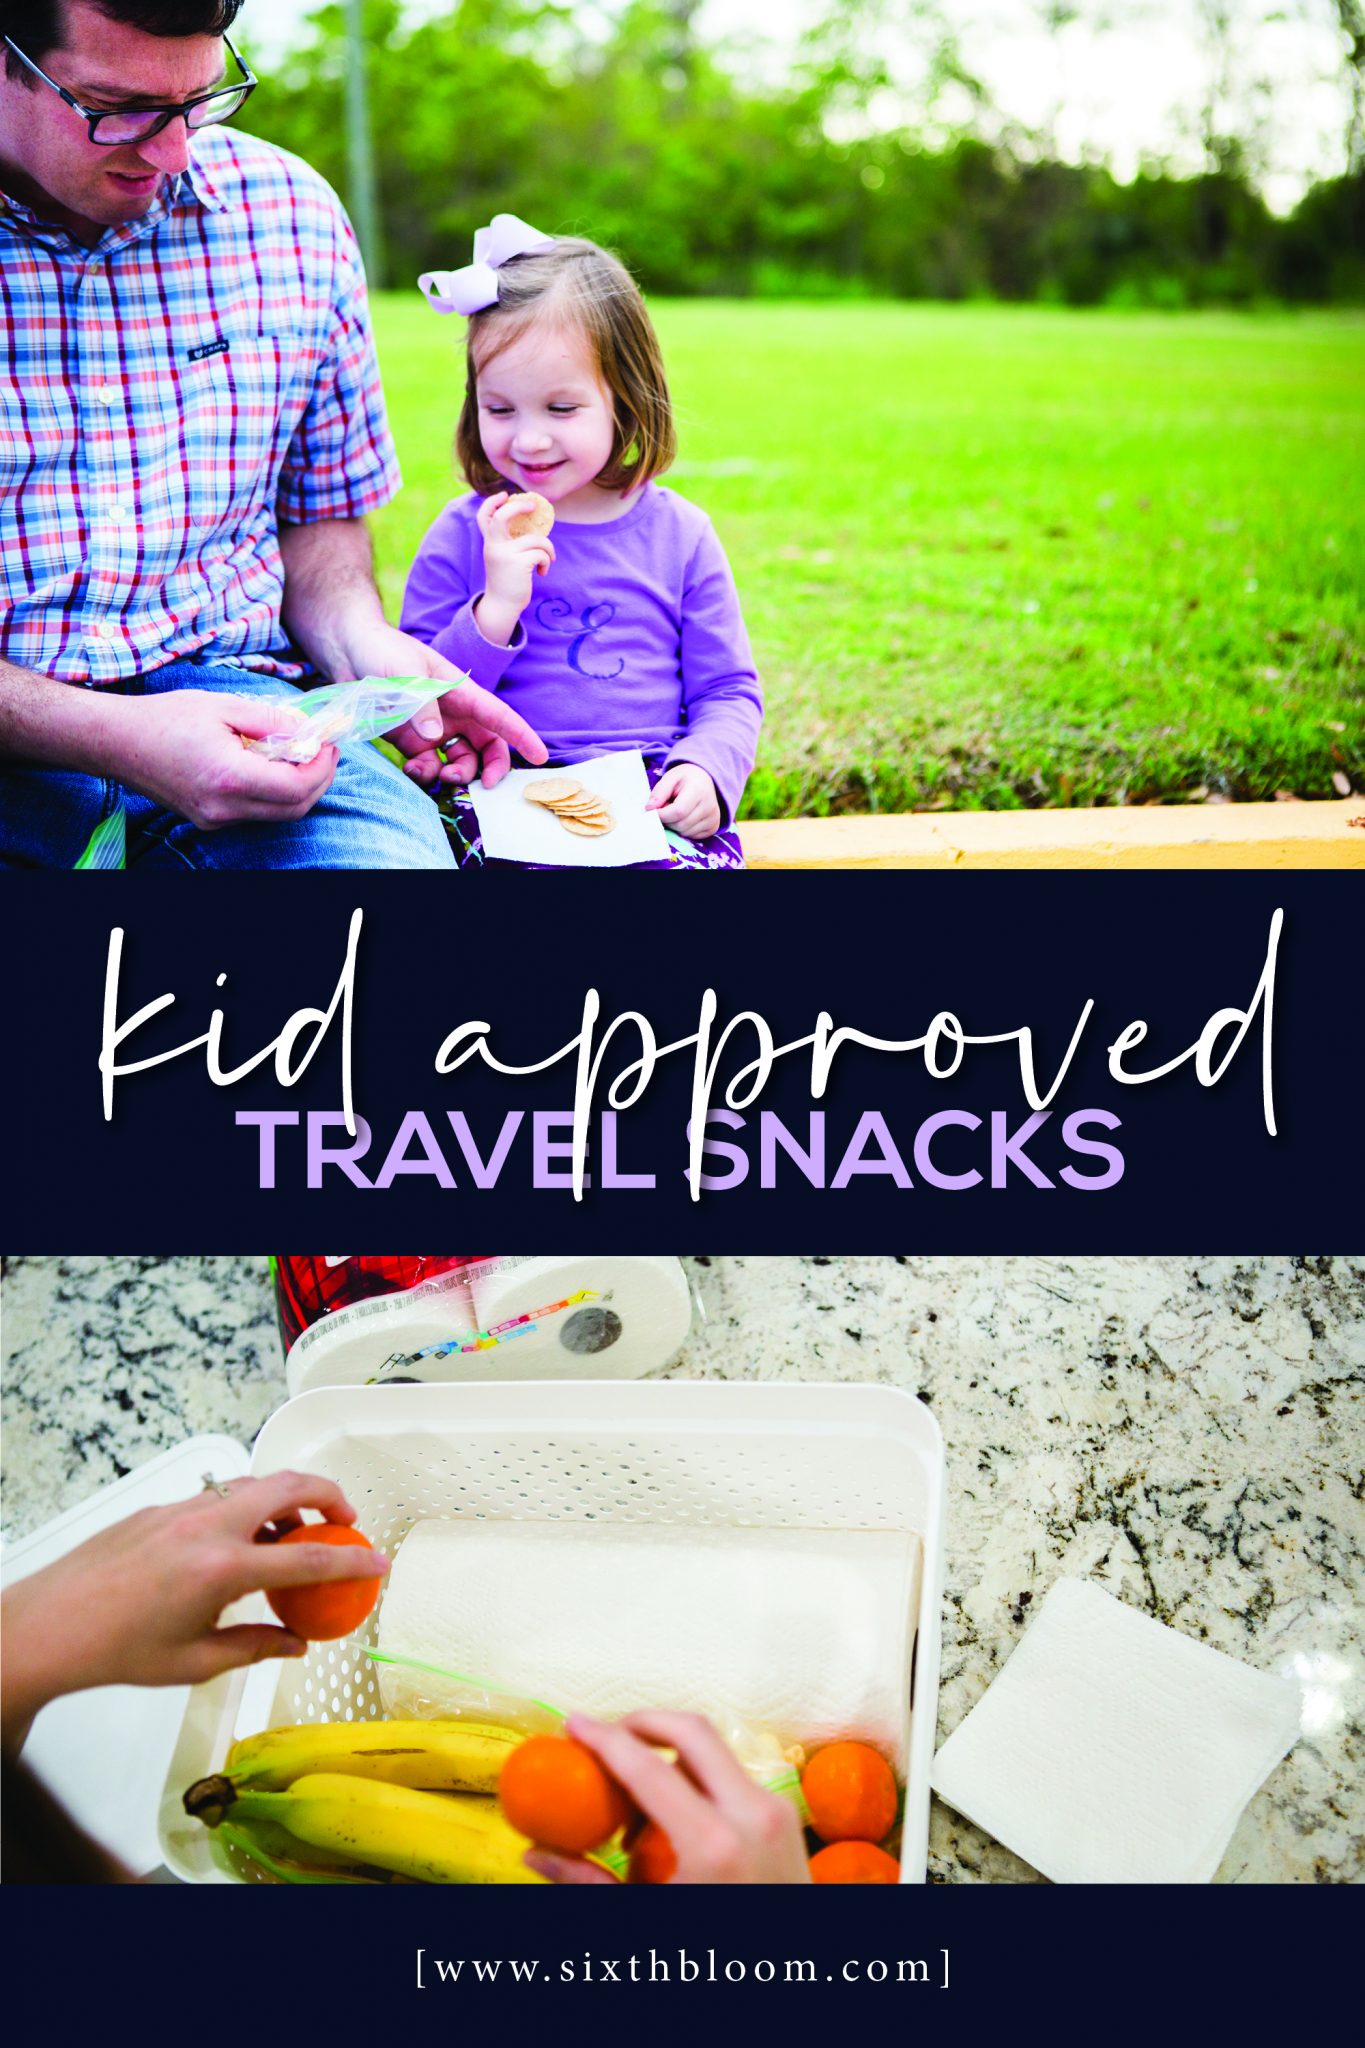 Travel Snack Ideas for Kids